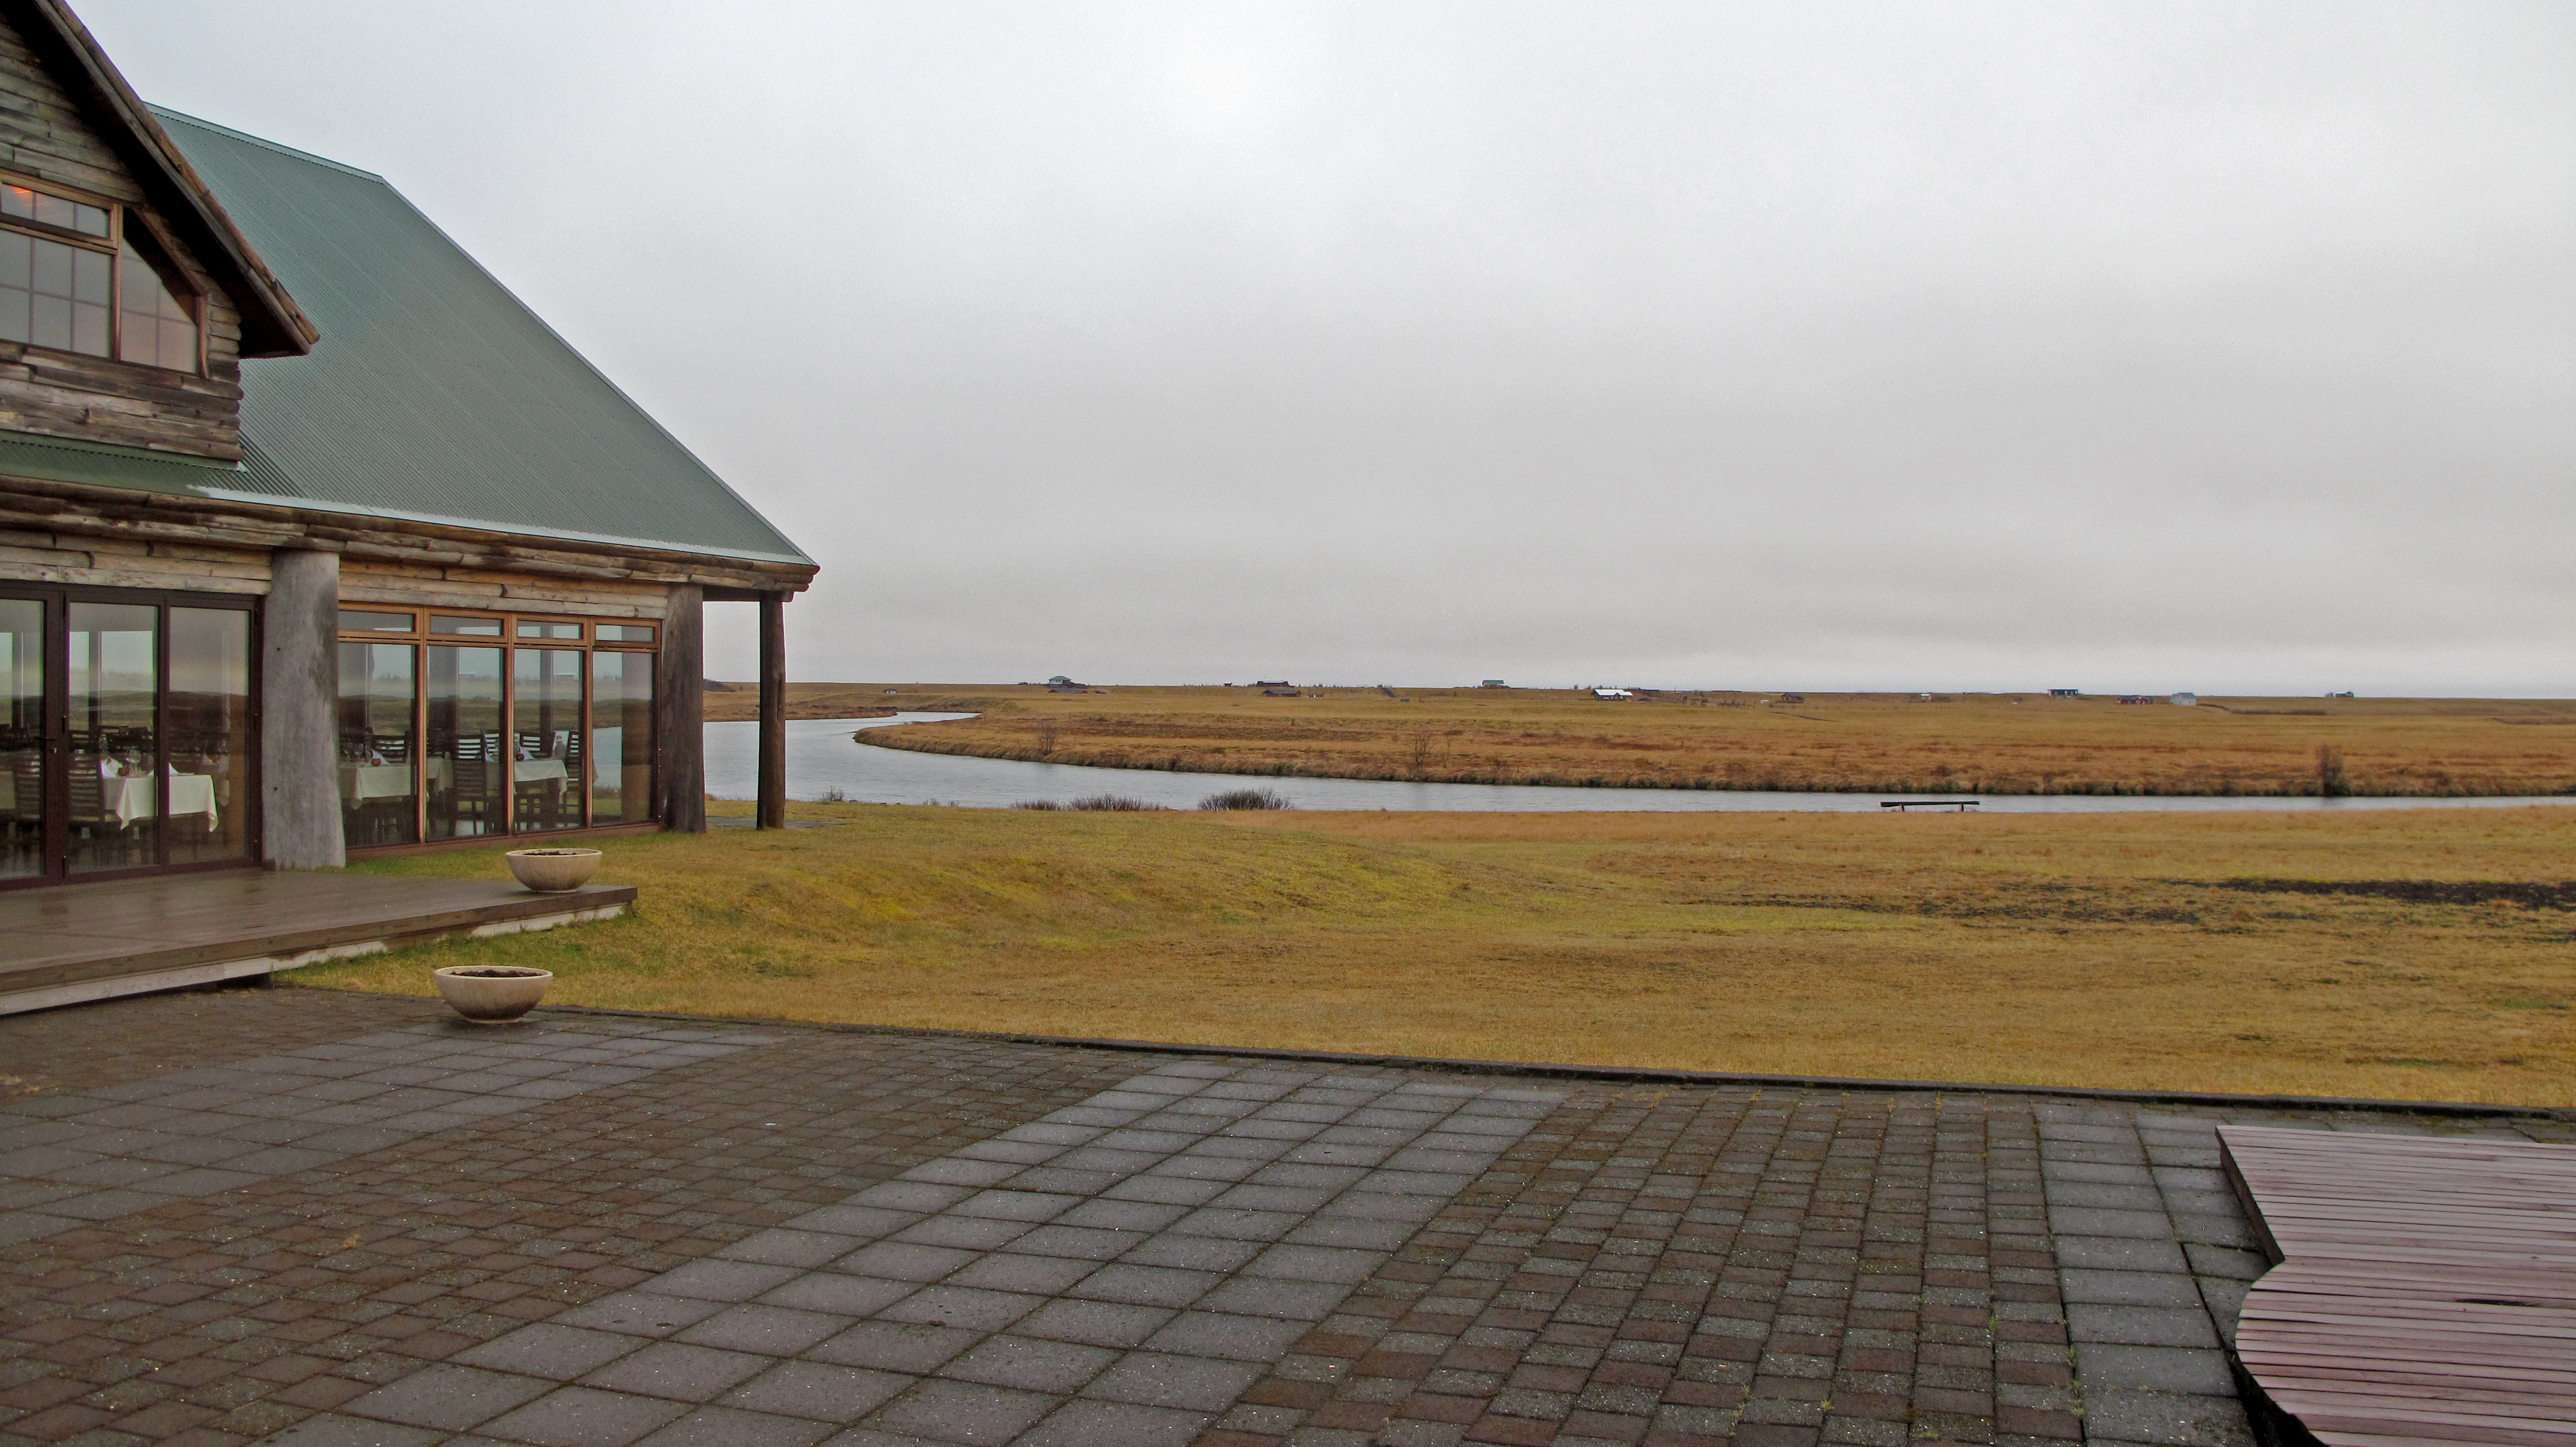 View of the Salmon River from Hotel Ranga in Southern Iceland © The Wandering Wanderluster www.thewanderingwanderluster.com